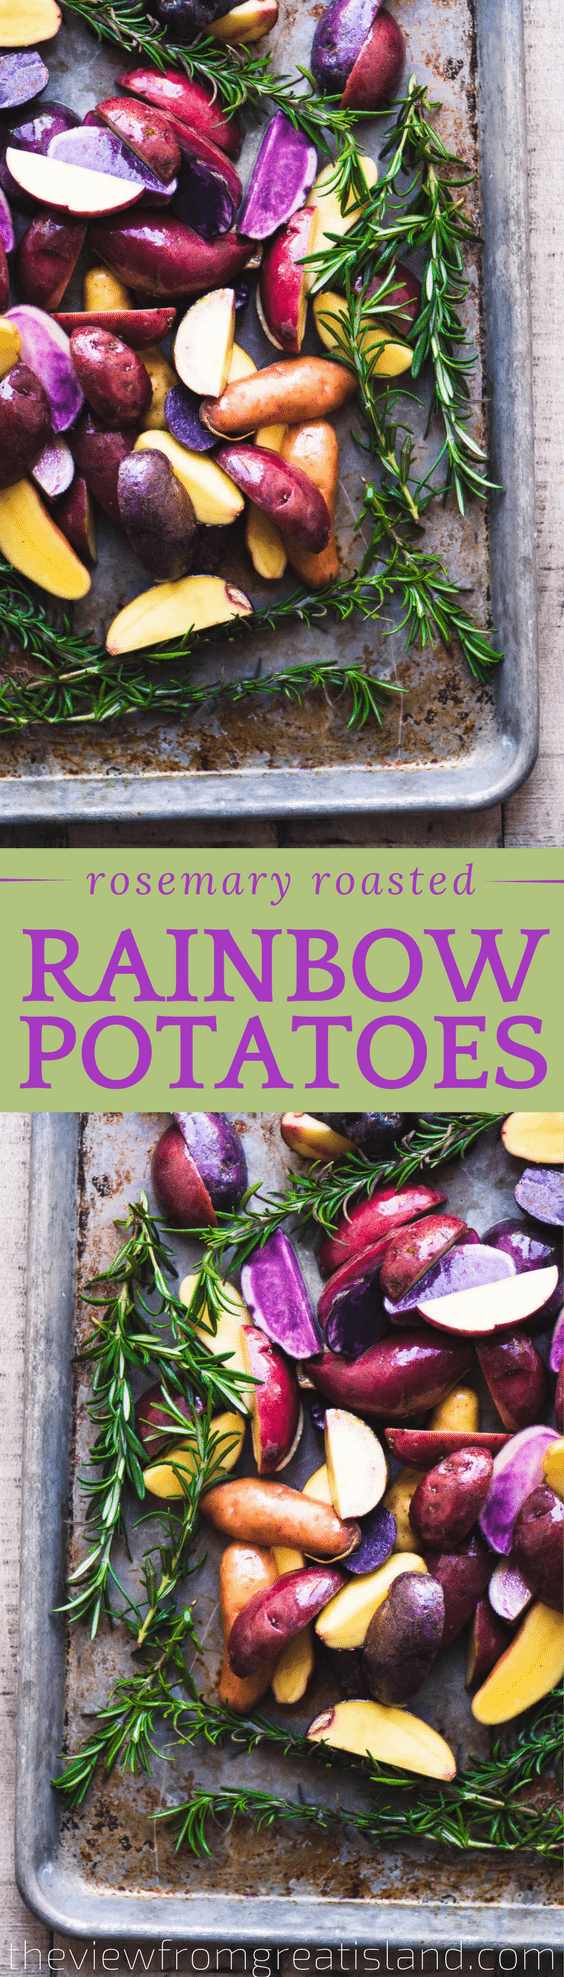 Rosemary Roasted Rainbow Potatoes are a colorful and easy side dish that brings some excitement to the table, and they're no more trouble to make than regular roasted potatoes. #sidedish #rainbow #newpotatoes #roastedpotatoes #easysidedish #dinner #redpotatoes #bluepotatoes #purplepotatoes